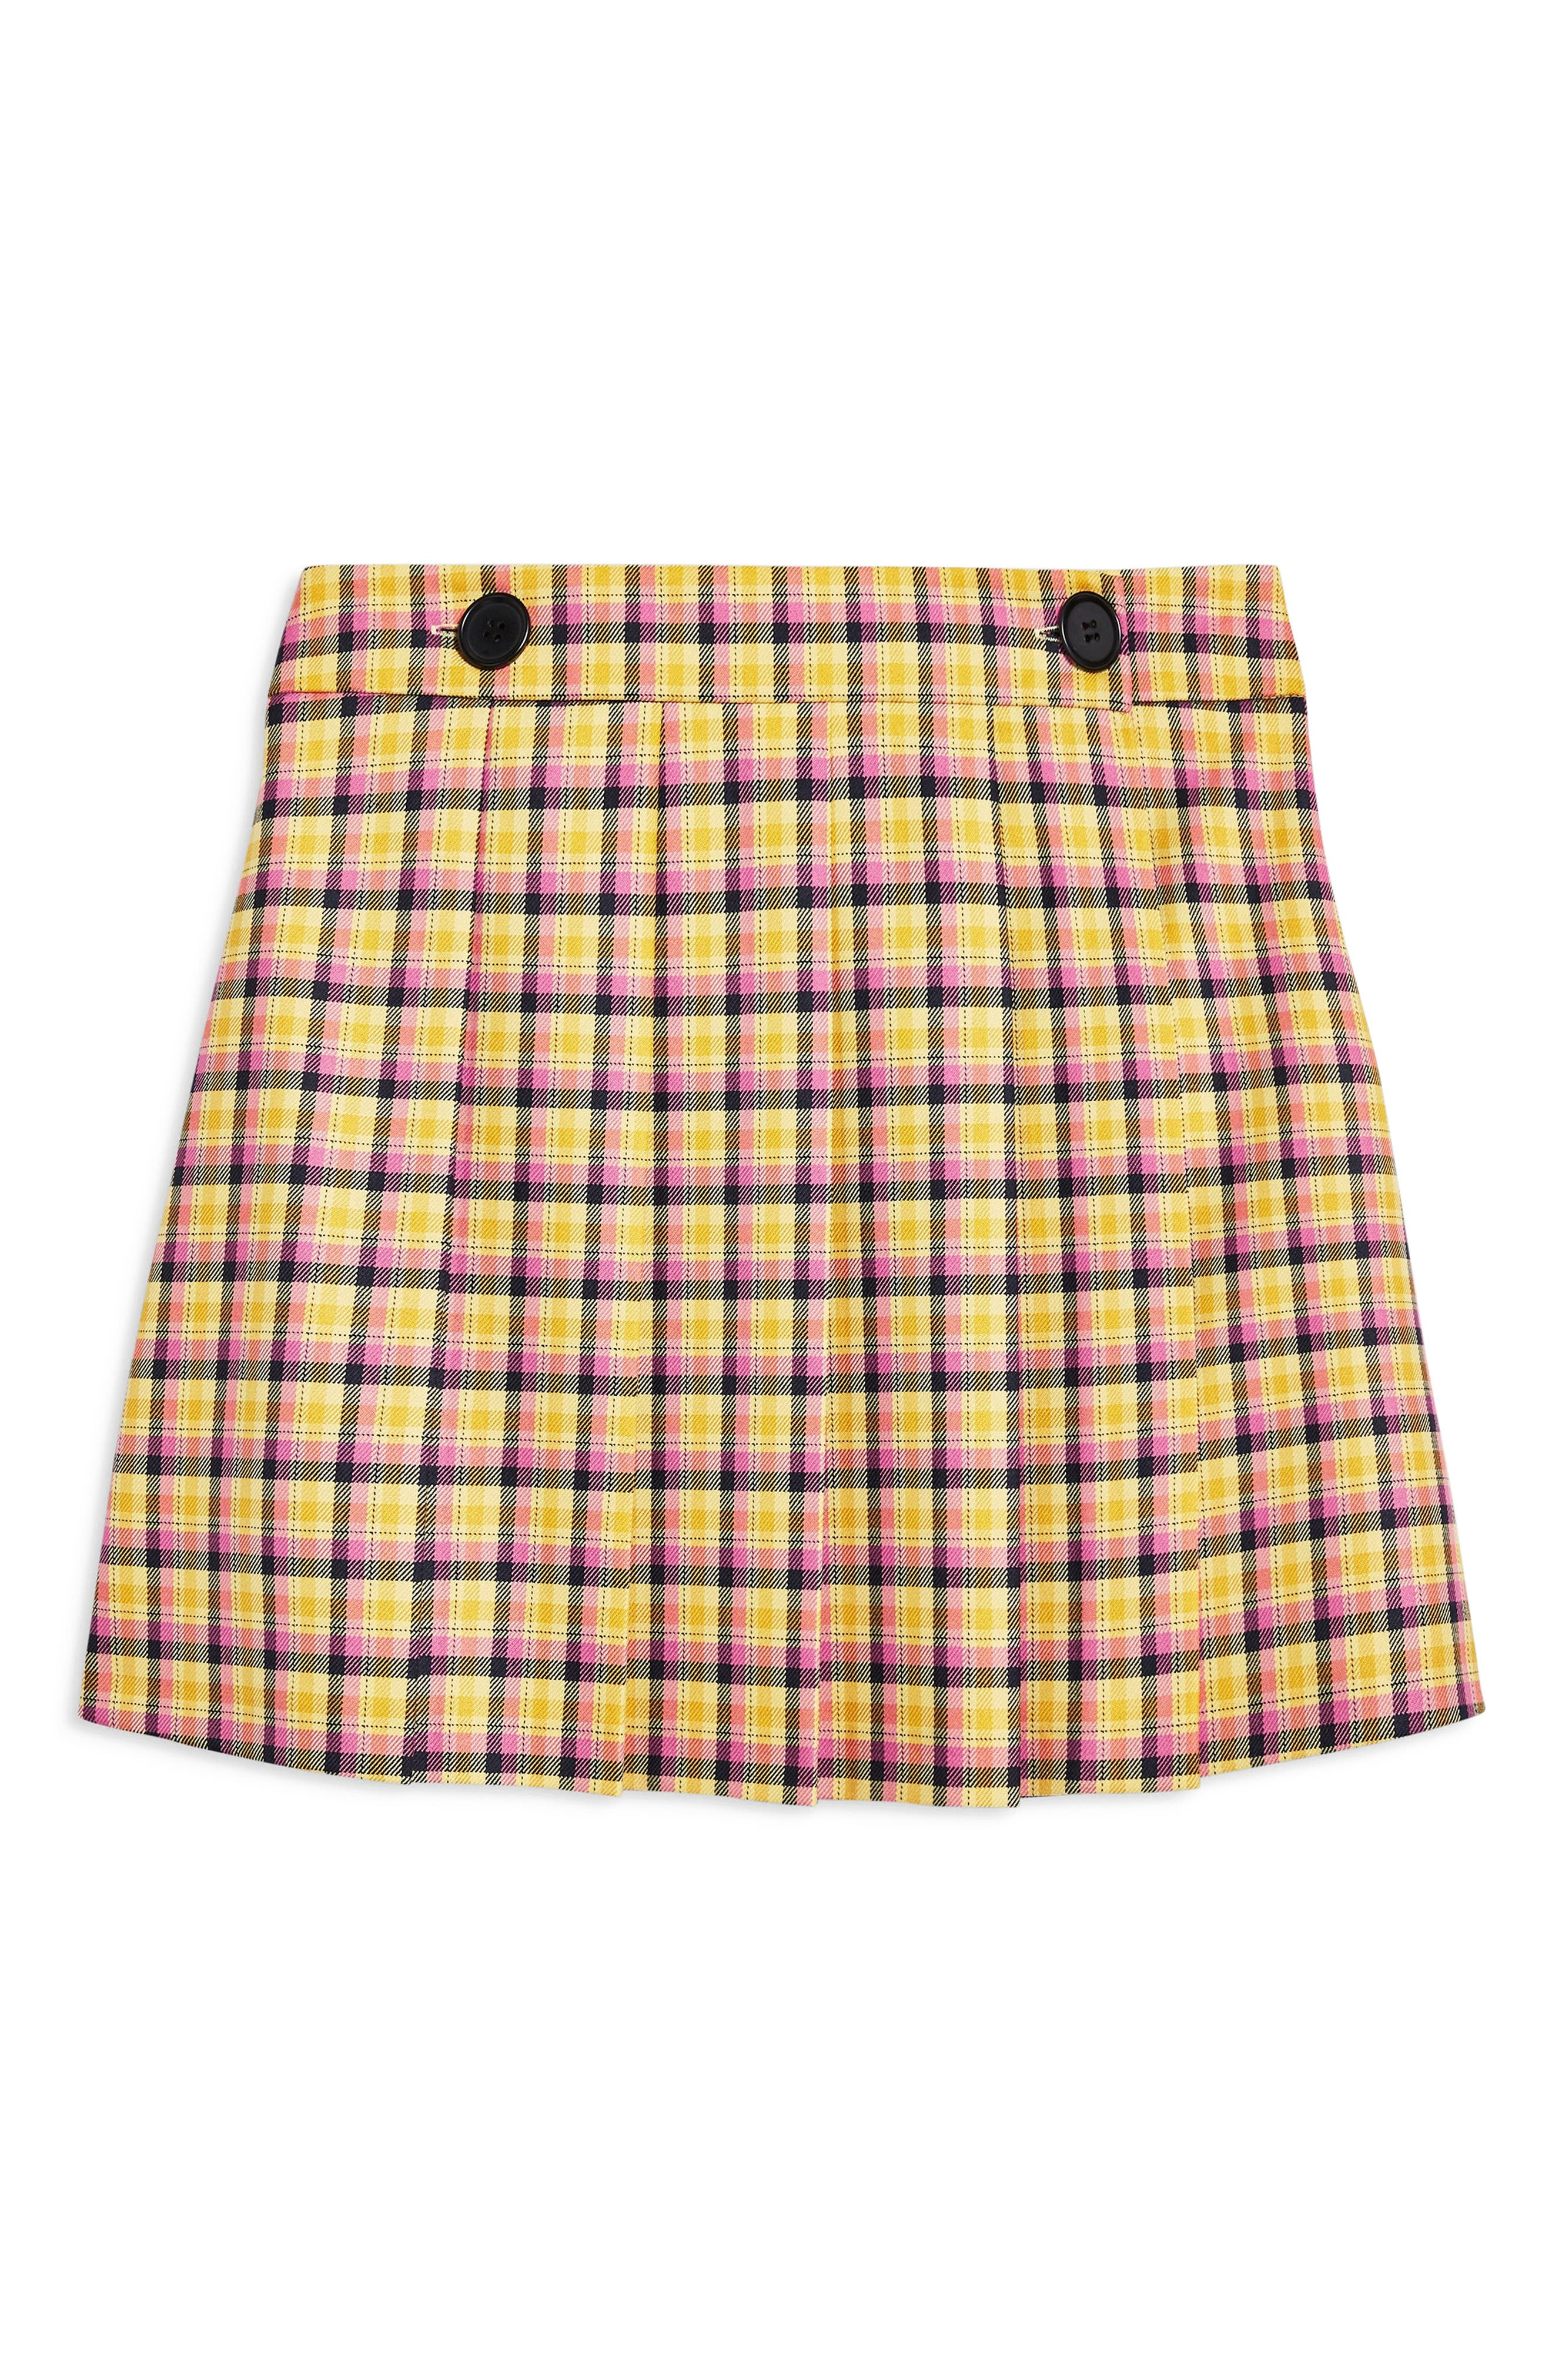 Check Kilt Miniskirt,                             Alternate thumbnail 3, color,                             YELLOW MULTI